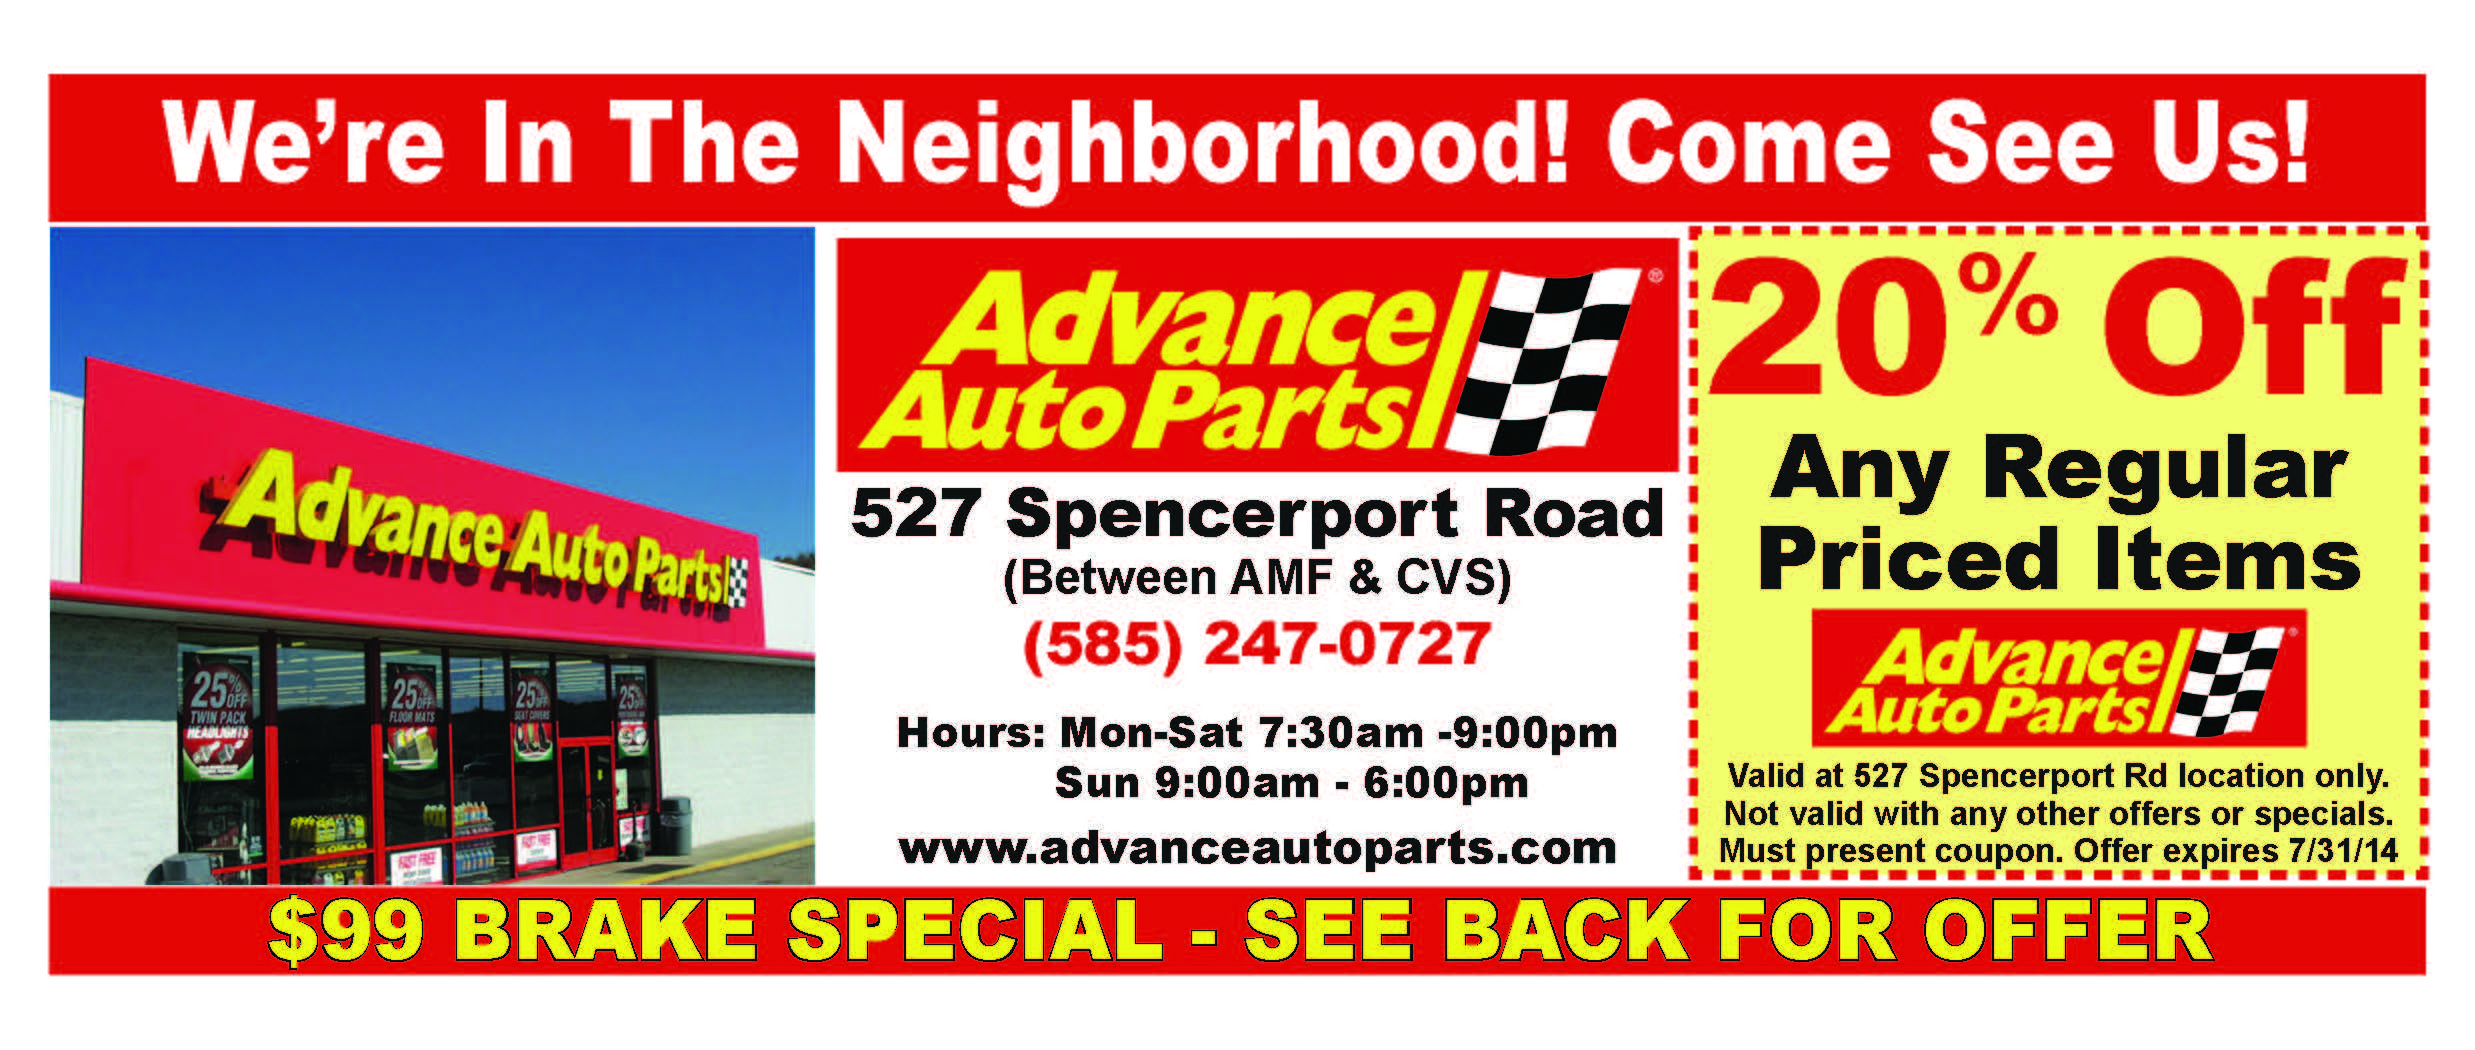 Advance Auto Parts Spencerport Coupons Spencerport The Neighbourhood Auto